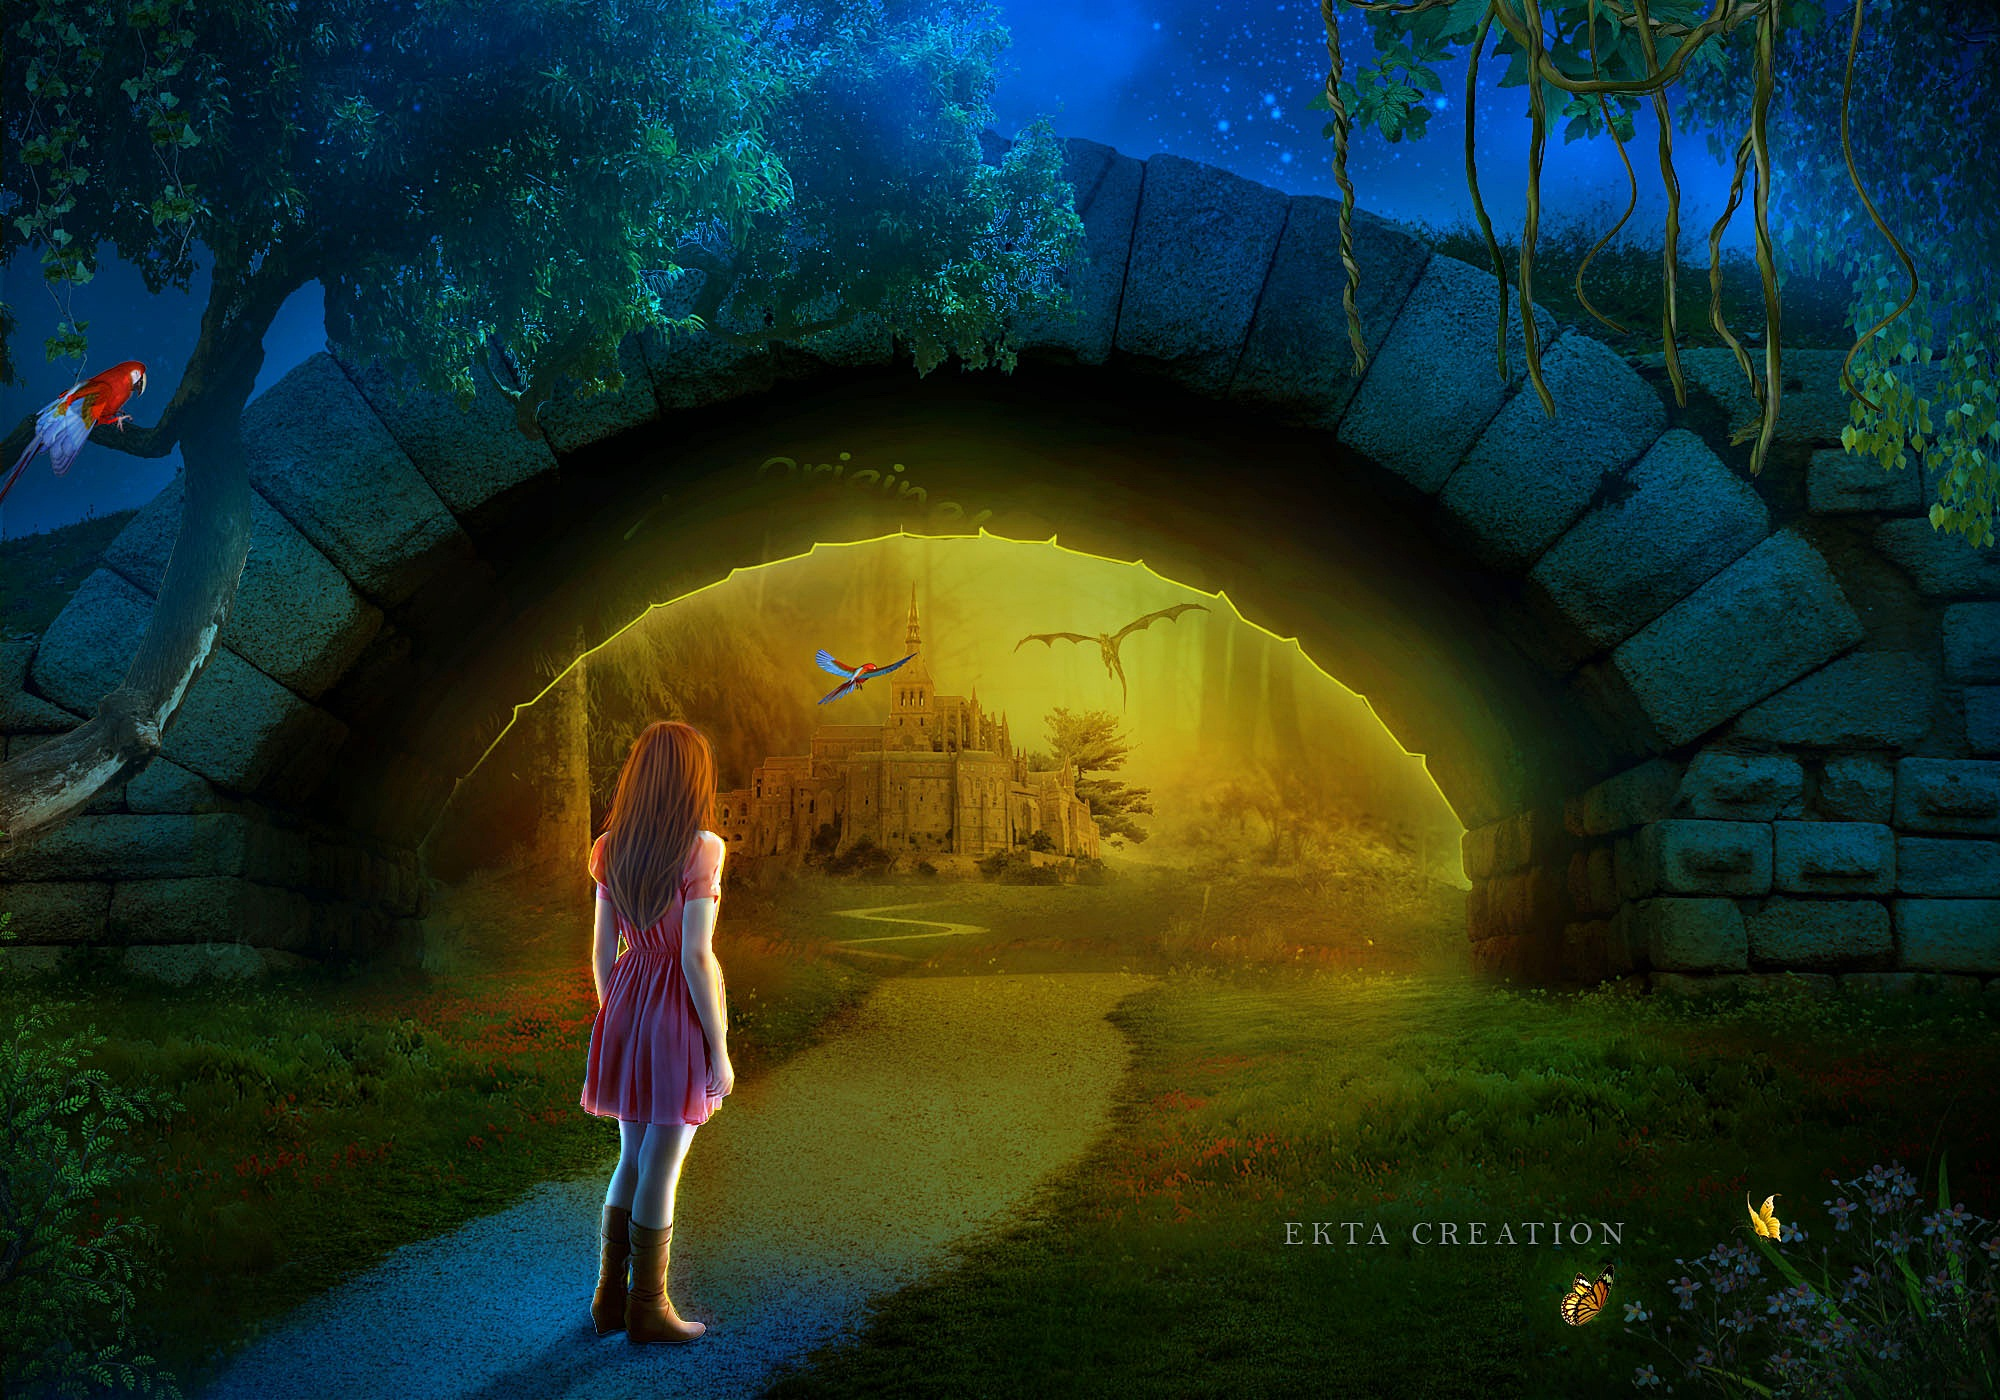 Cute Babies Images moreover 247 likewise How To Grow A Pineapple together with Deer Clip Art Image 10071 together with Secret Gate Of The Magic World 576012616. on birch tree wallpaper